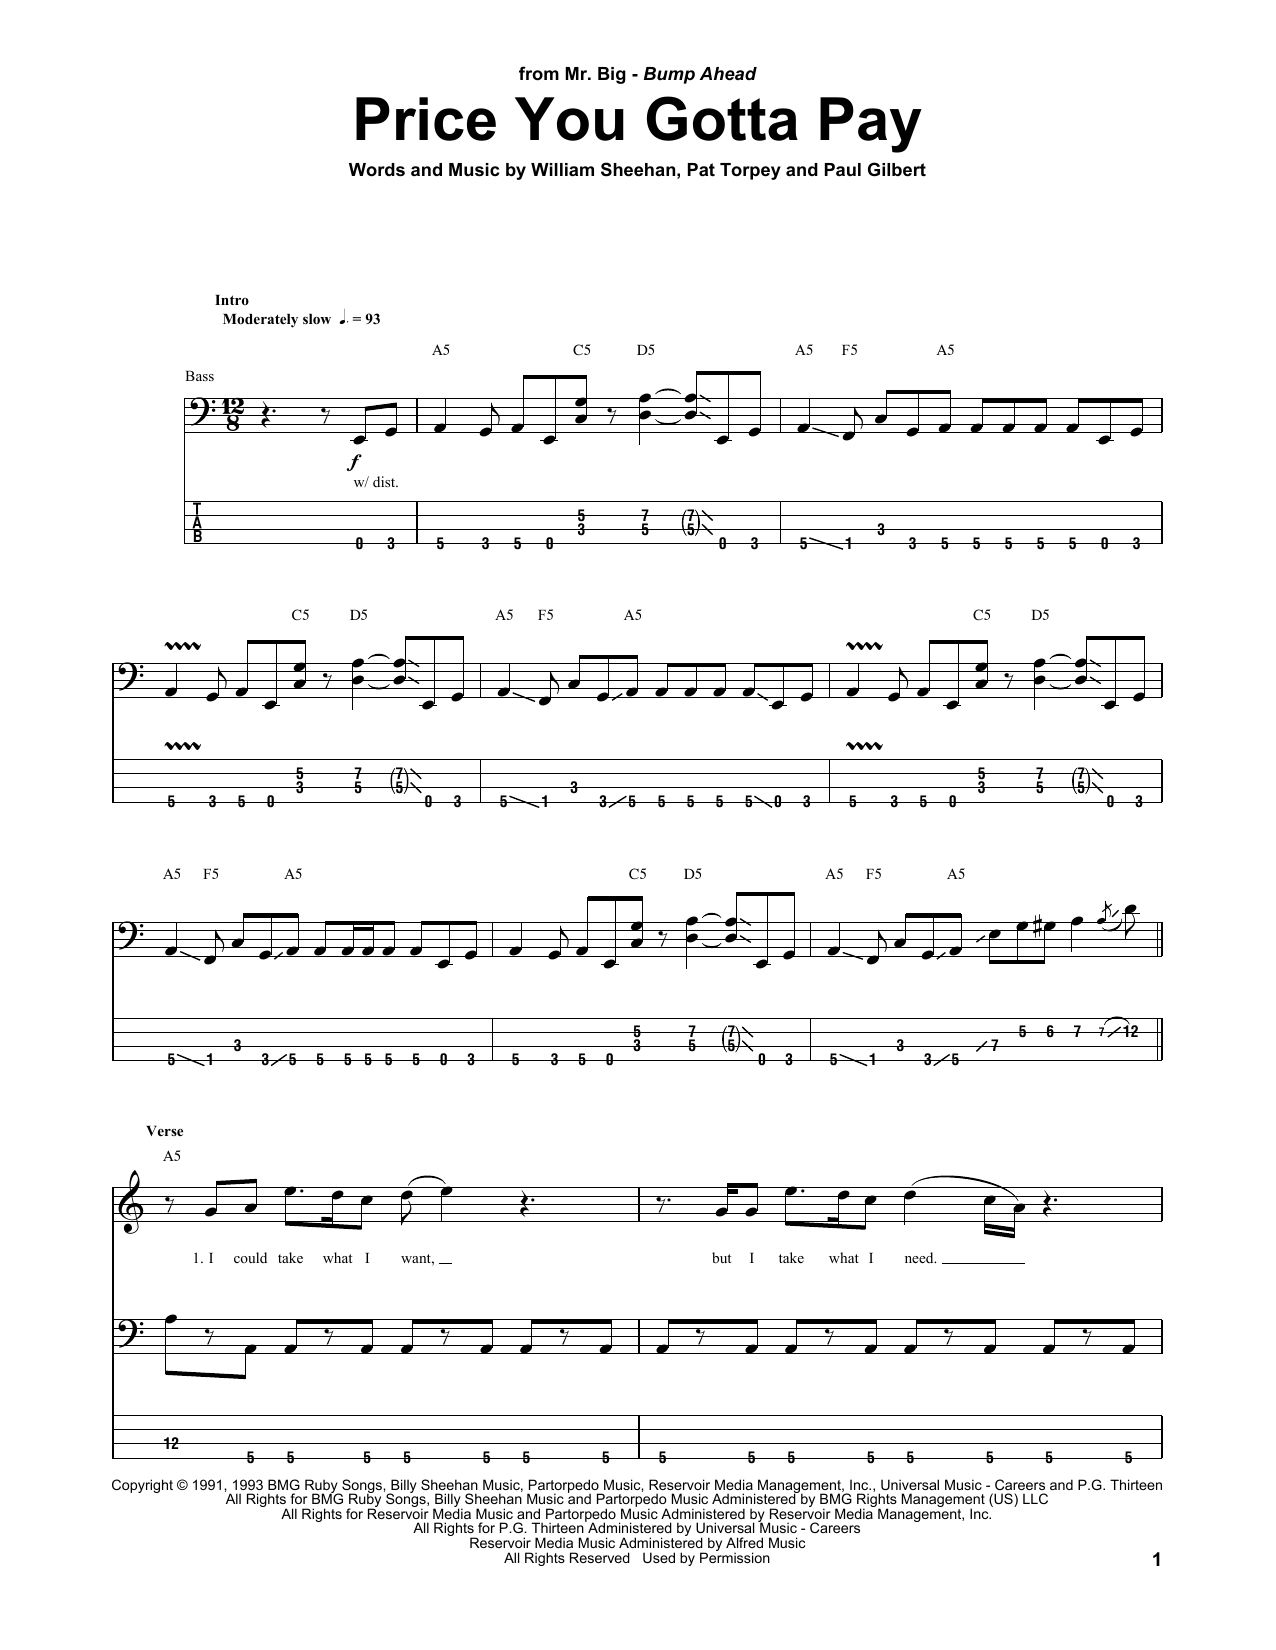 Price You Gotta Pay Sheet Music